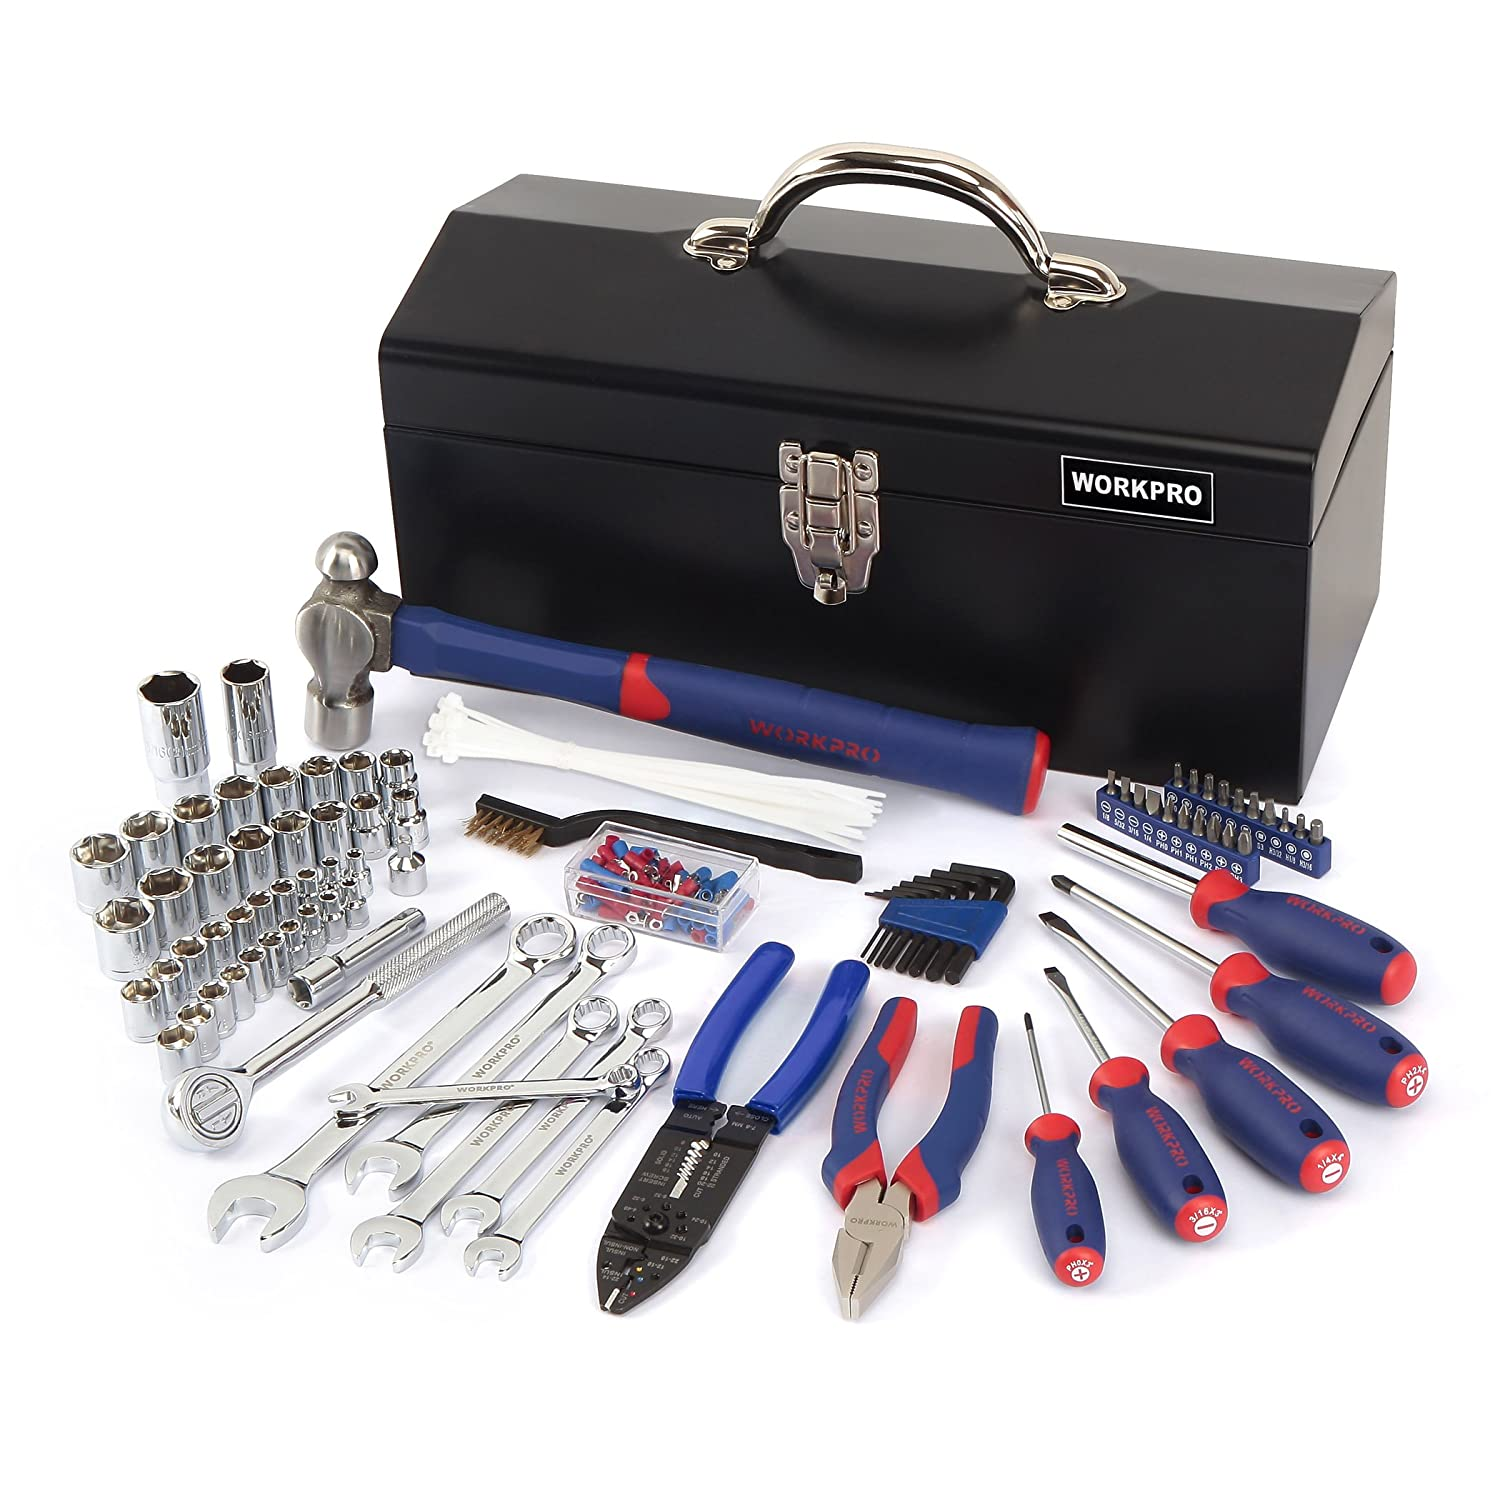 WORKPRO W009027A 160-Piece Mechanic Tool Kit, Daily use Basic Tool Set includes hammer, wrench, pliers, screwdriver and bits Hangzhou Great Star Industrial Co. LTD.